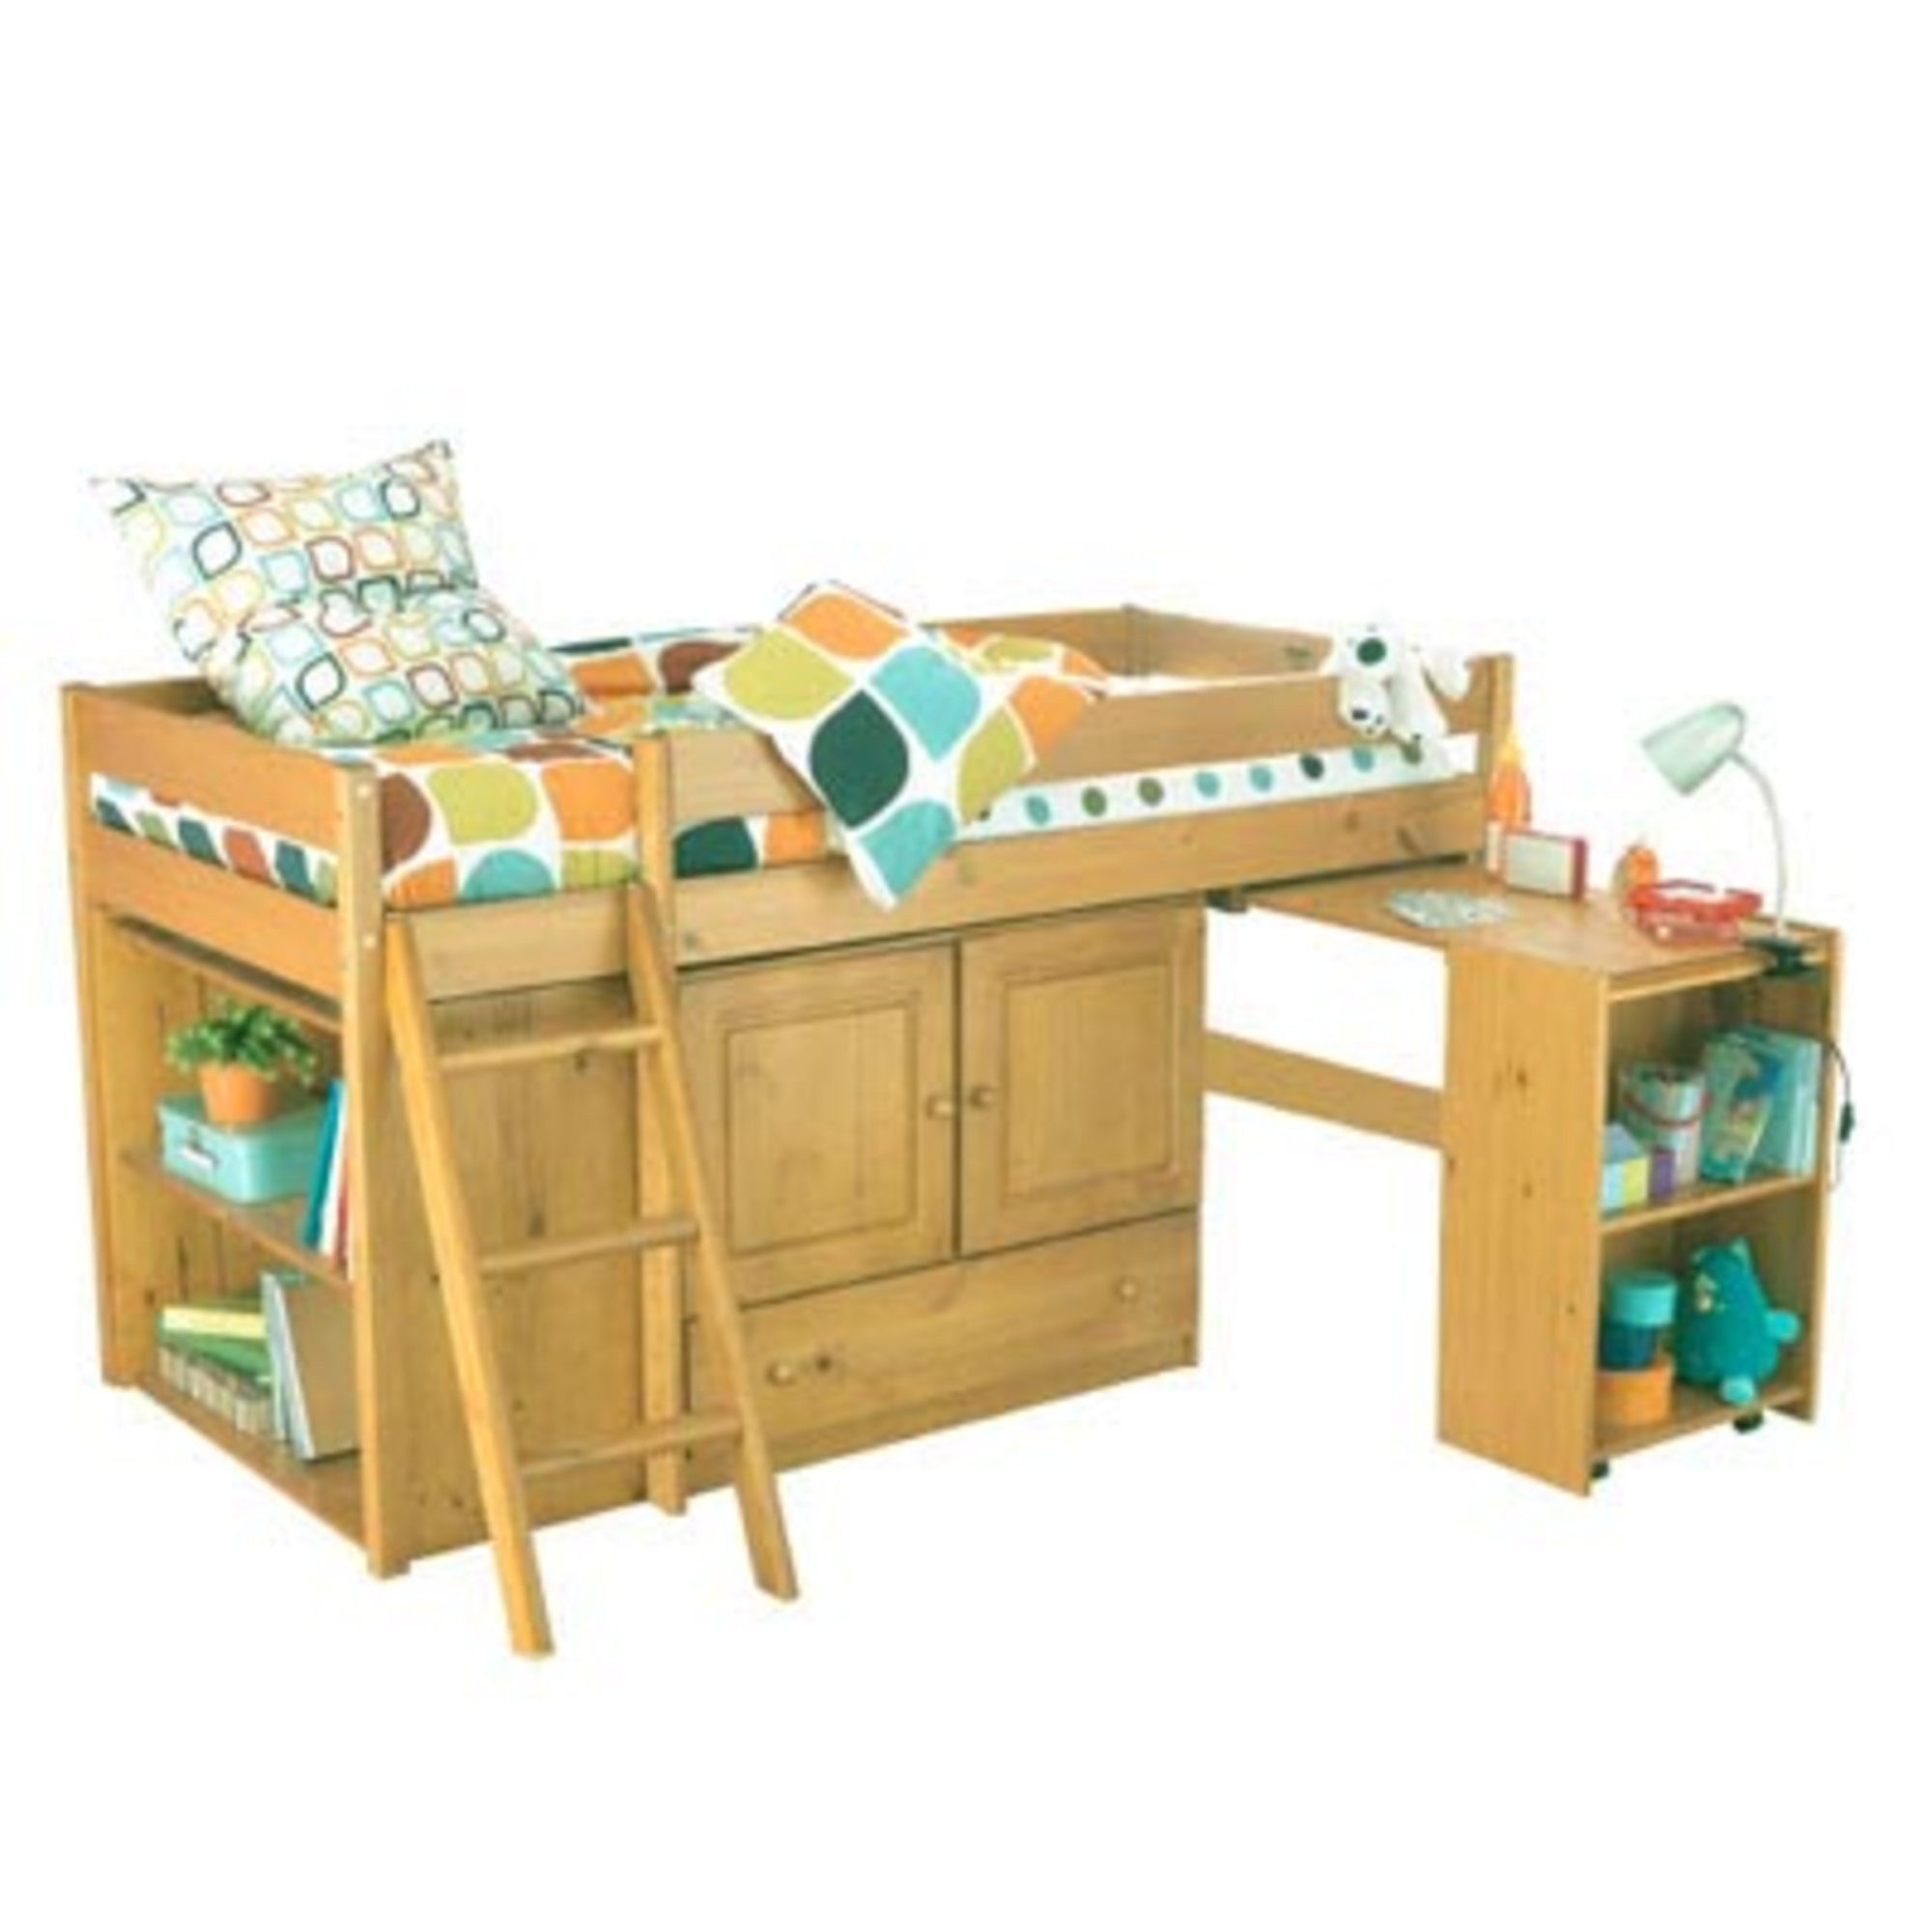 lit sur lev enfant haut alicia lit en bois pas cher. Black Bedroom Furniture Sets. Home Design Ideas